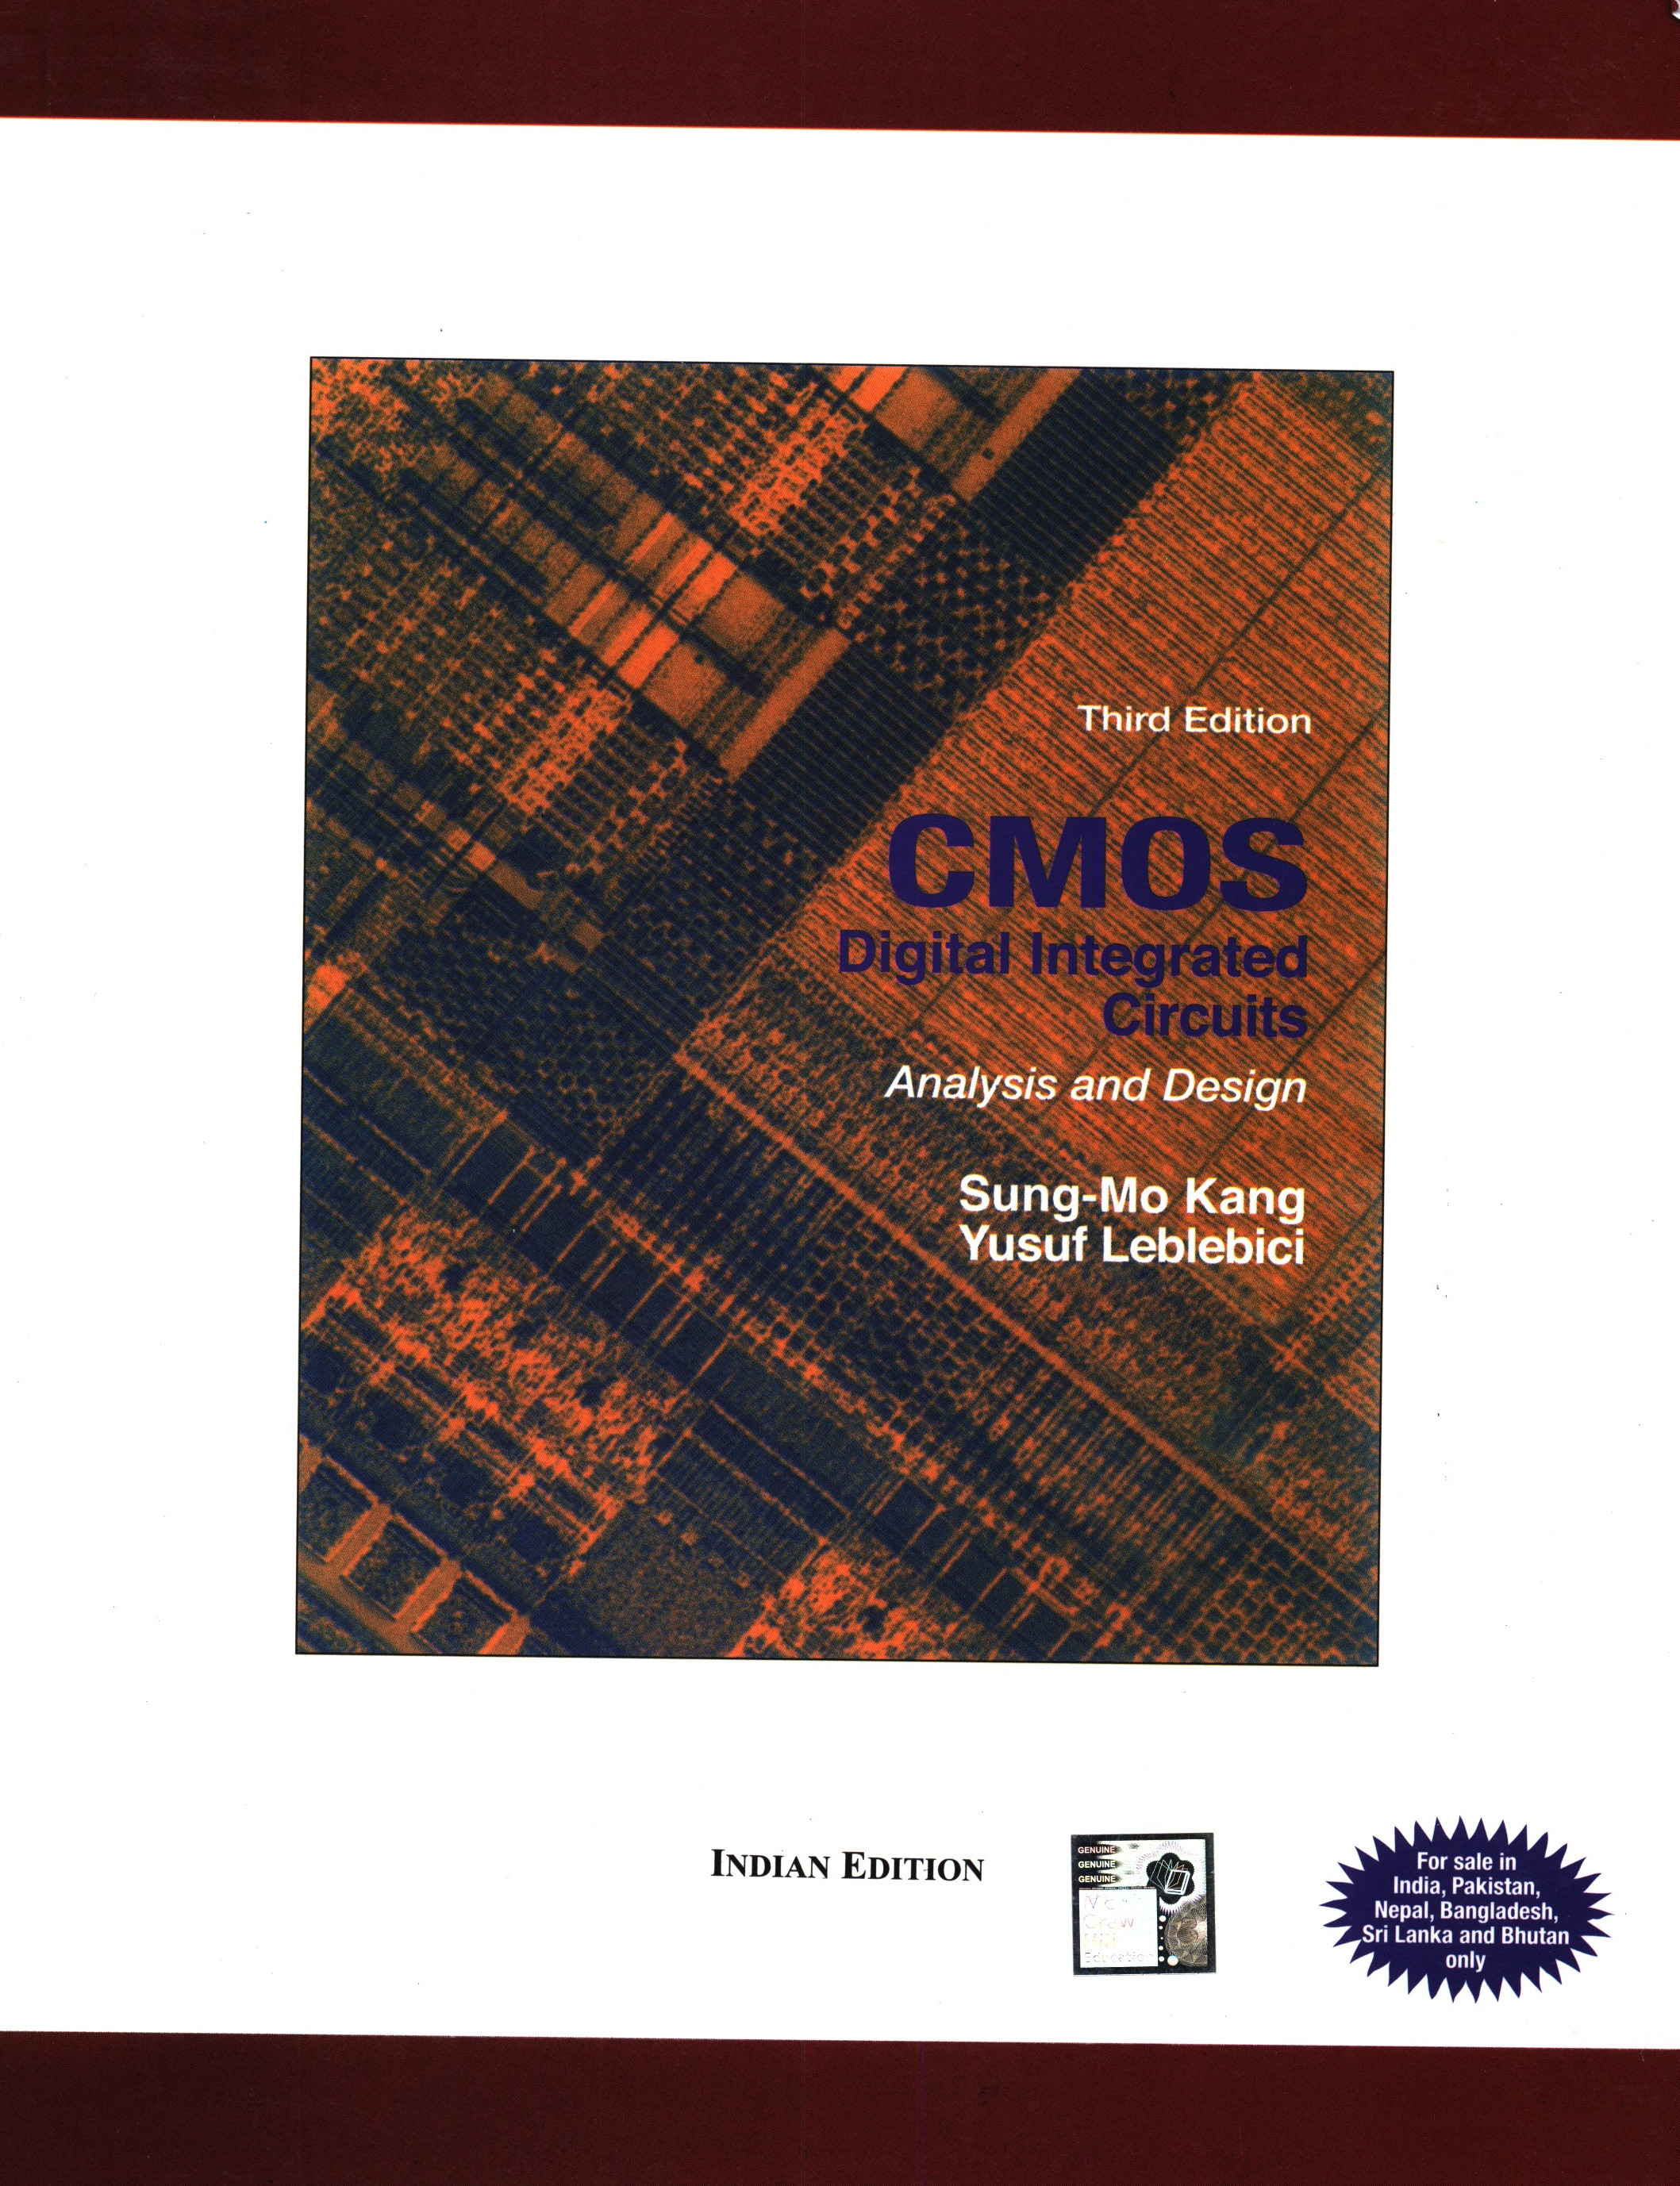 cmos and digital design Cs 6710-001 fall 2015 digital vlsi design cs 6710-001 fall 2015 digital vlsi this book is available at a special price in a bundle with the cmos vlsi design.